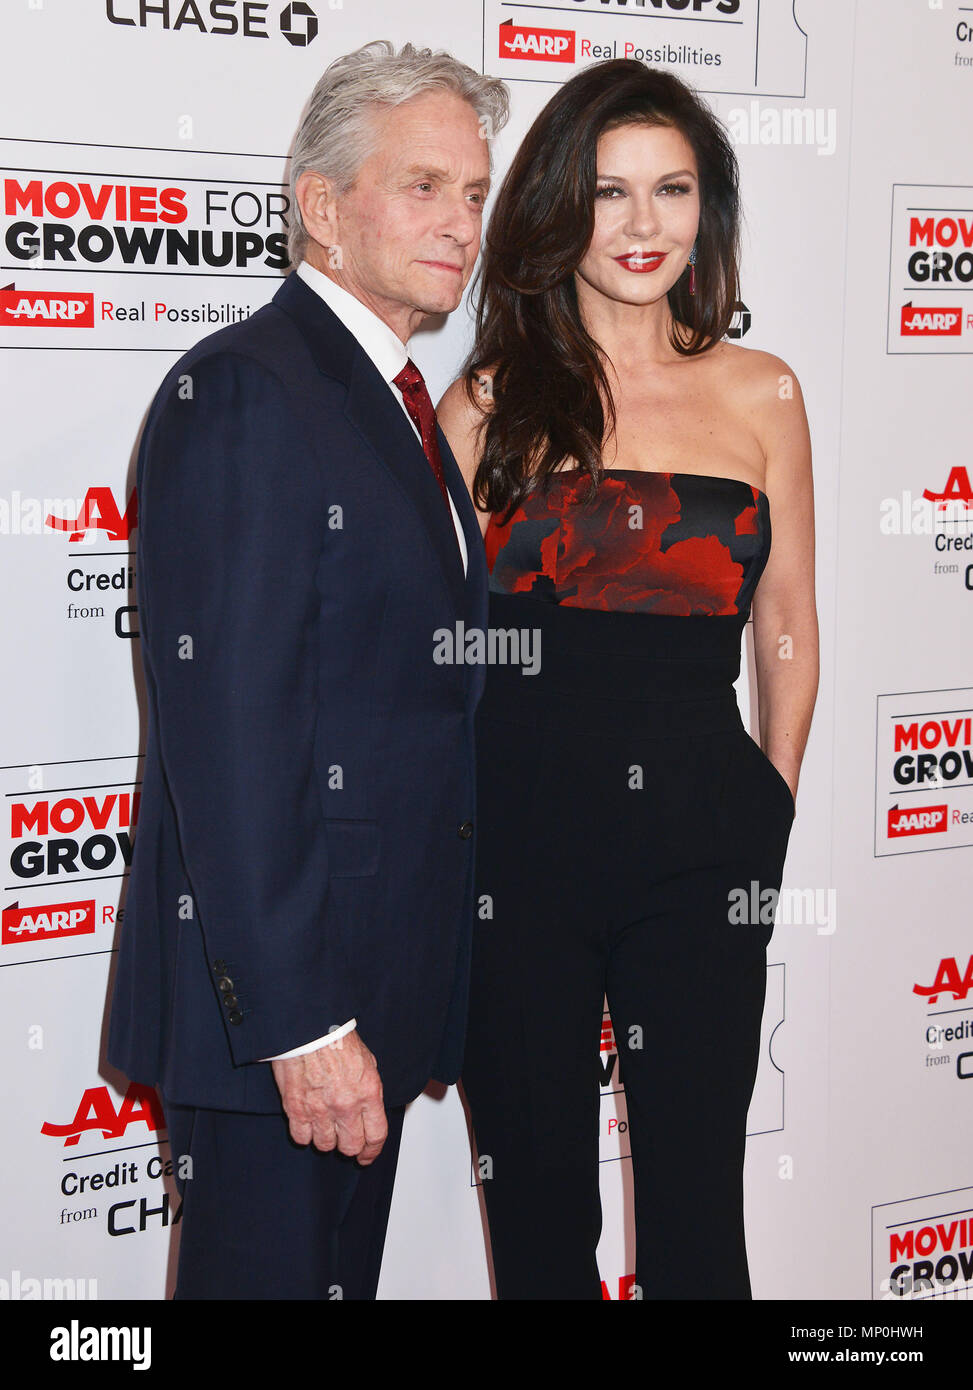 Michael Douglas, Catherine Zeta Jones 015 at the Movies For Grow Ups - AARP - at the Beverly Wilshire Hotel in Los Angeles. February 8, 2016.Michael Douglas, Catherine Zeta Jones 015 ------------- Red Carpet Event, Vertical, USA, Film Industry, Celebrities,  Photography, Bestof, Arts Culture and Entertainment, Topix Celebrities fashion /  Vertical, Best of, Event in Hollywood Life - California,  Red Carpet and backstage, USA, Film Industry, Celebrities,  movie celebrities, TV celebrities, Music celebrities, Photography, Bestof, Arts Culture and Entertainment,  Topix, vertical,  family from fro - Stock Image